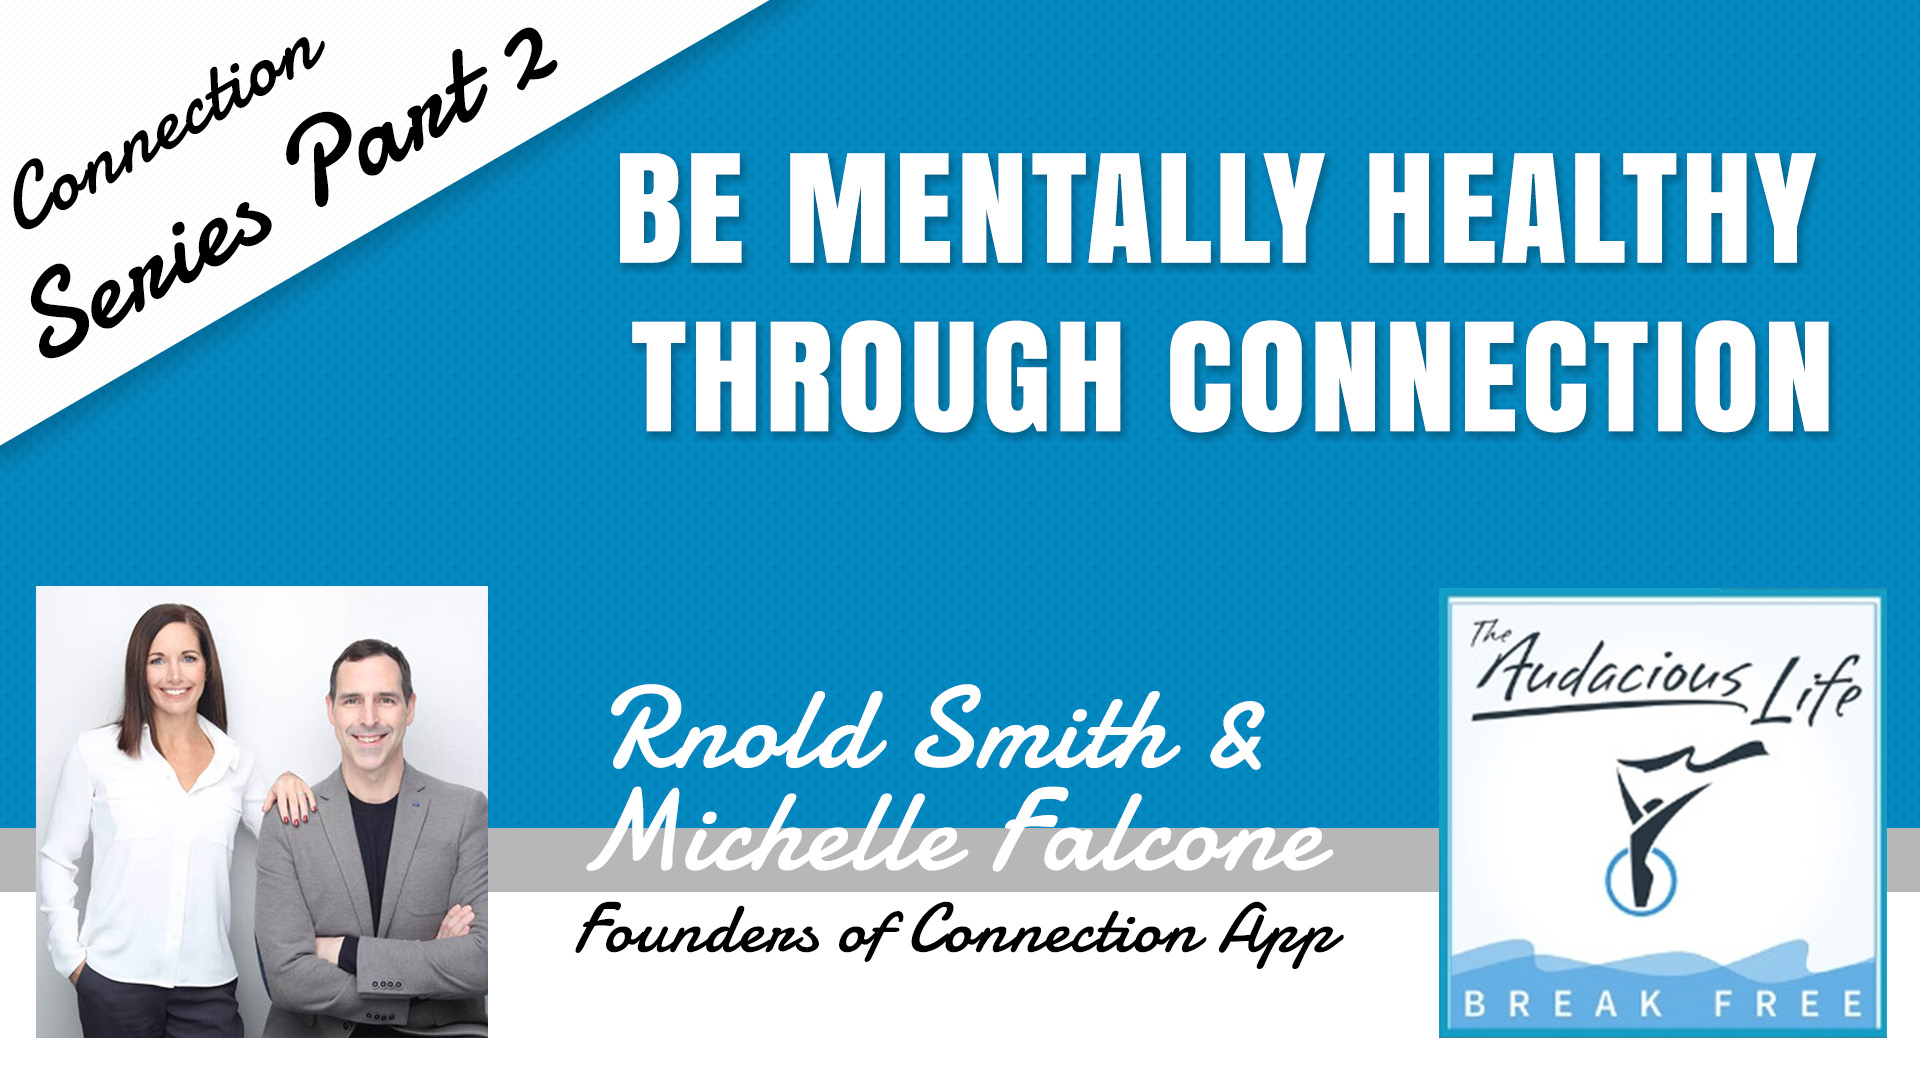 Be Mentally Healthy Through Connection with Michelle Falcone and Rnold Smith